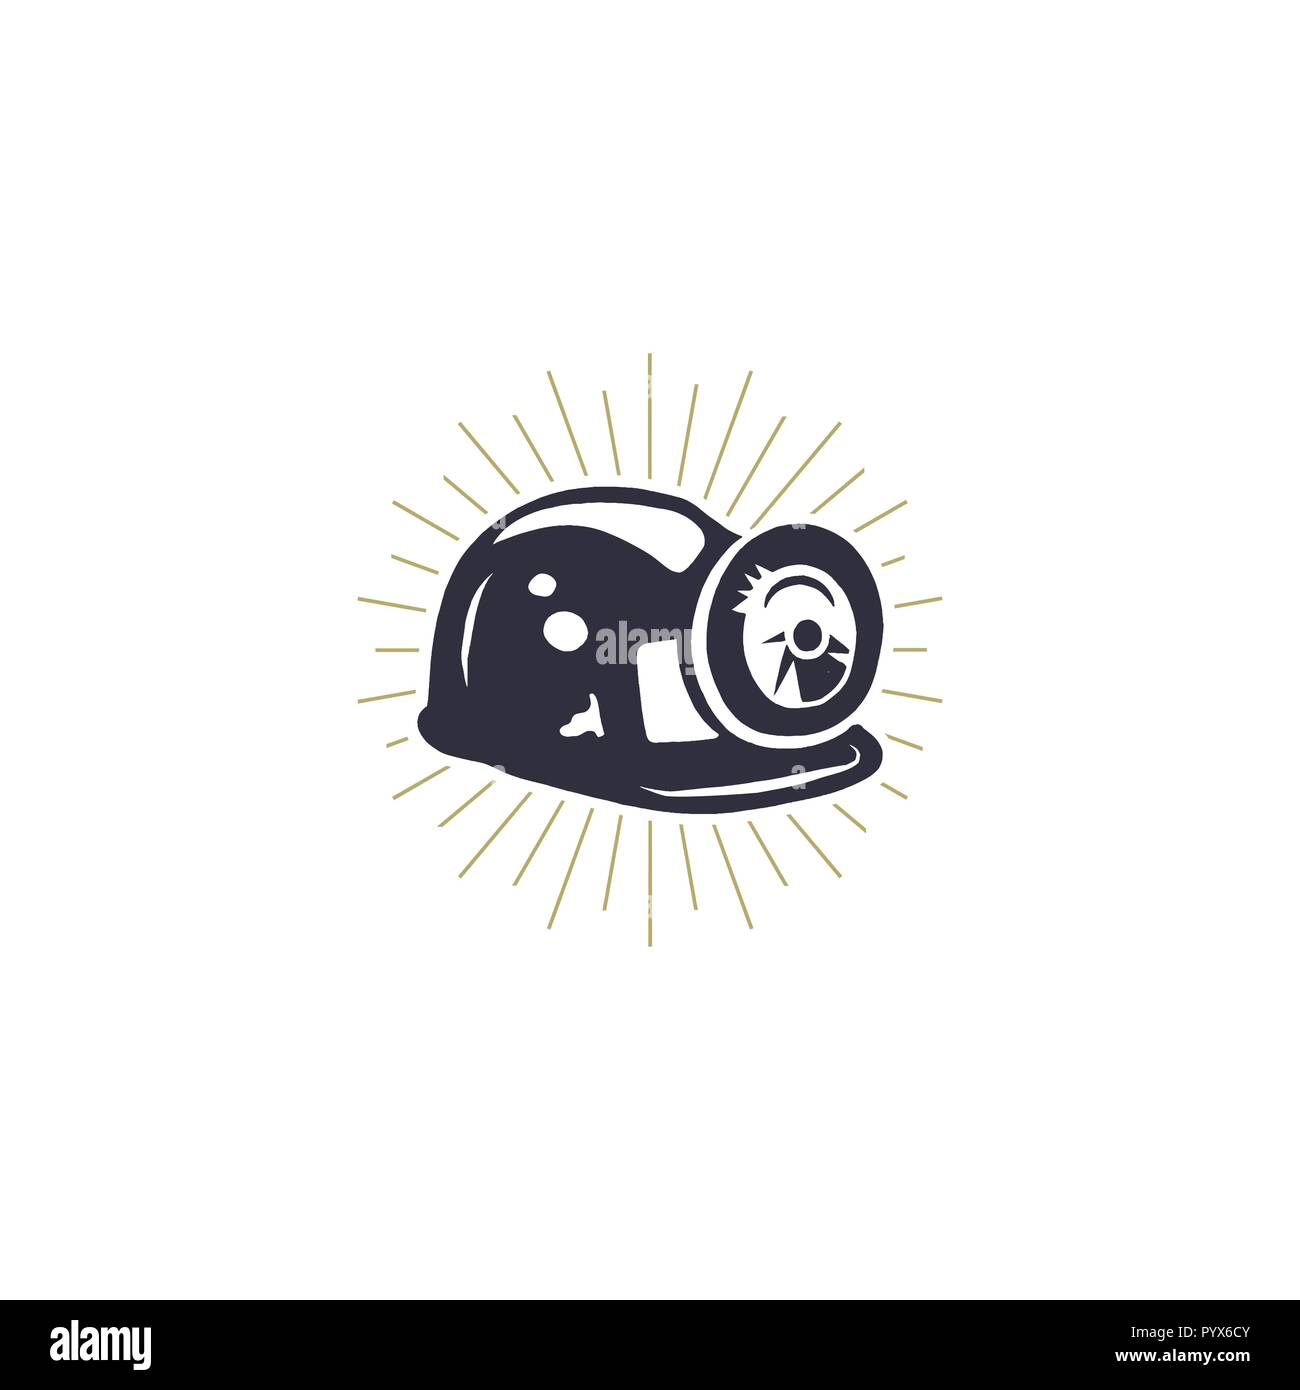 Retro Mining Helmet Icon with Built-in Light and Metal Brackets. Silhouette miner symbol. Stylish mine monochrome vector illustration. - Stock Vector